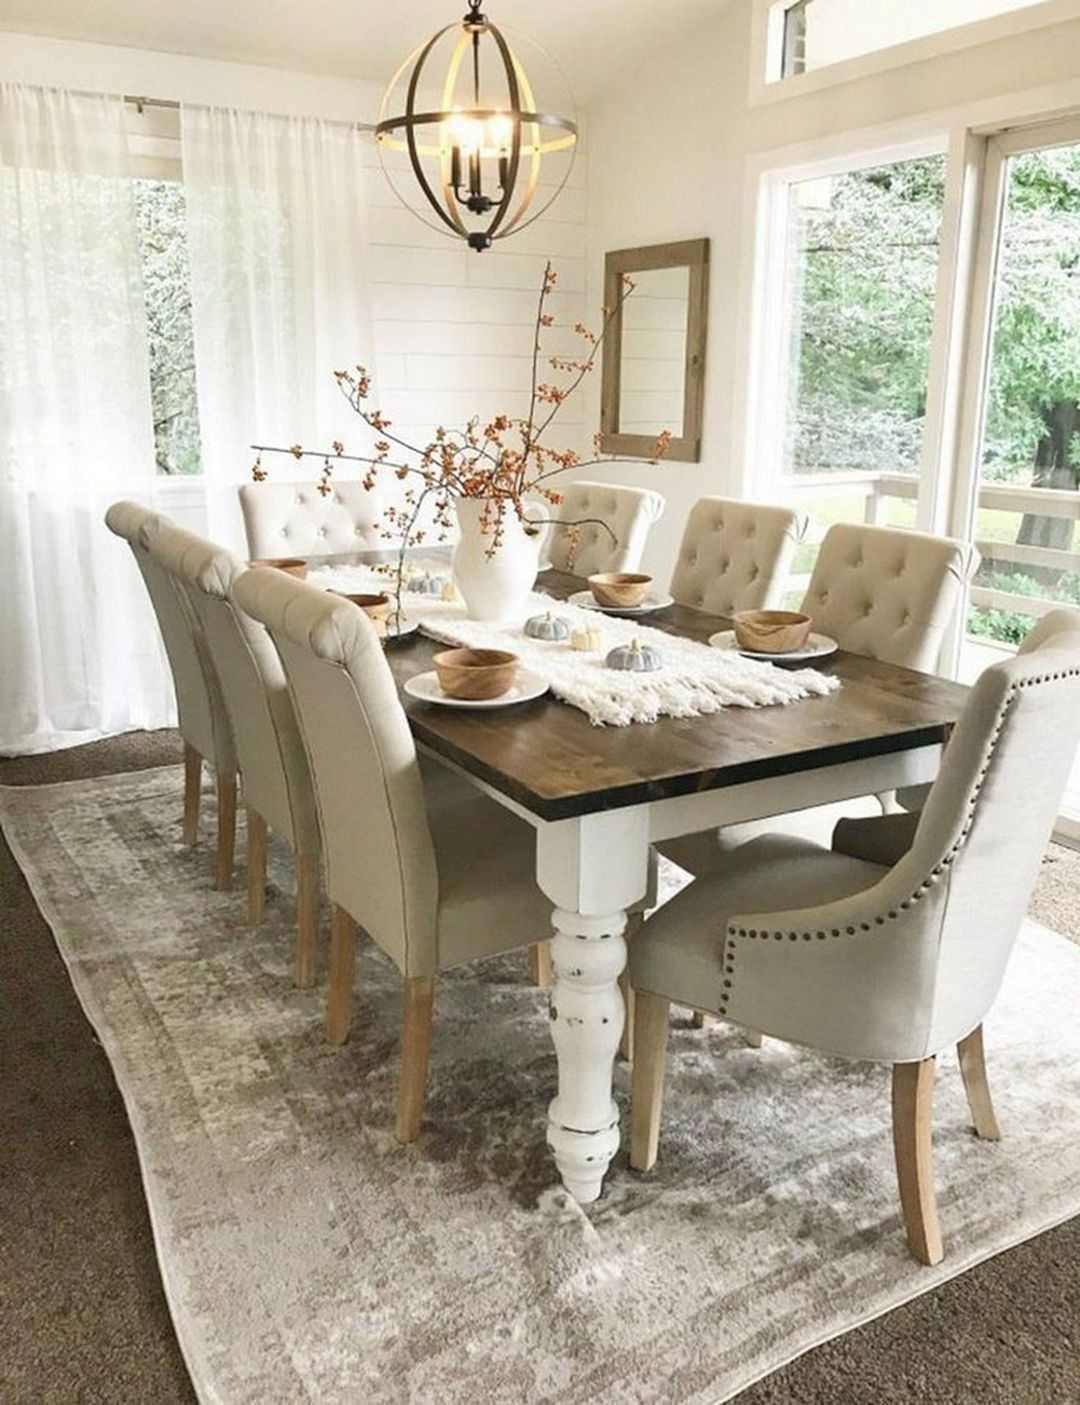 15 Extraordinary Farmhouse Dining Table Ideas You Must Have Dexorate